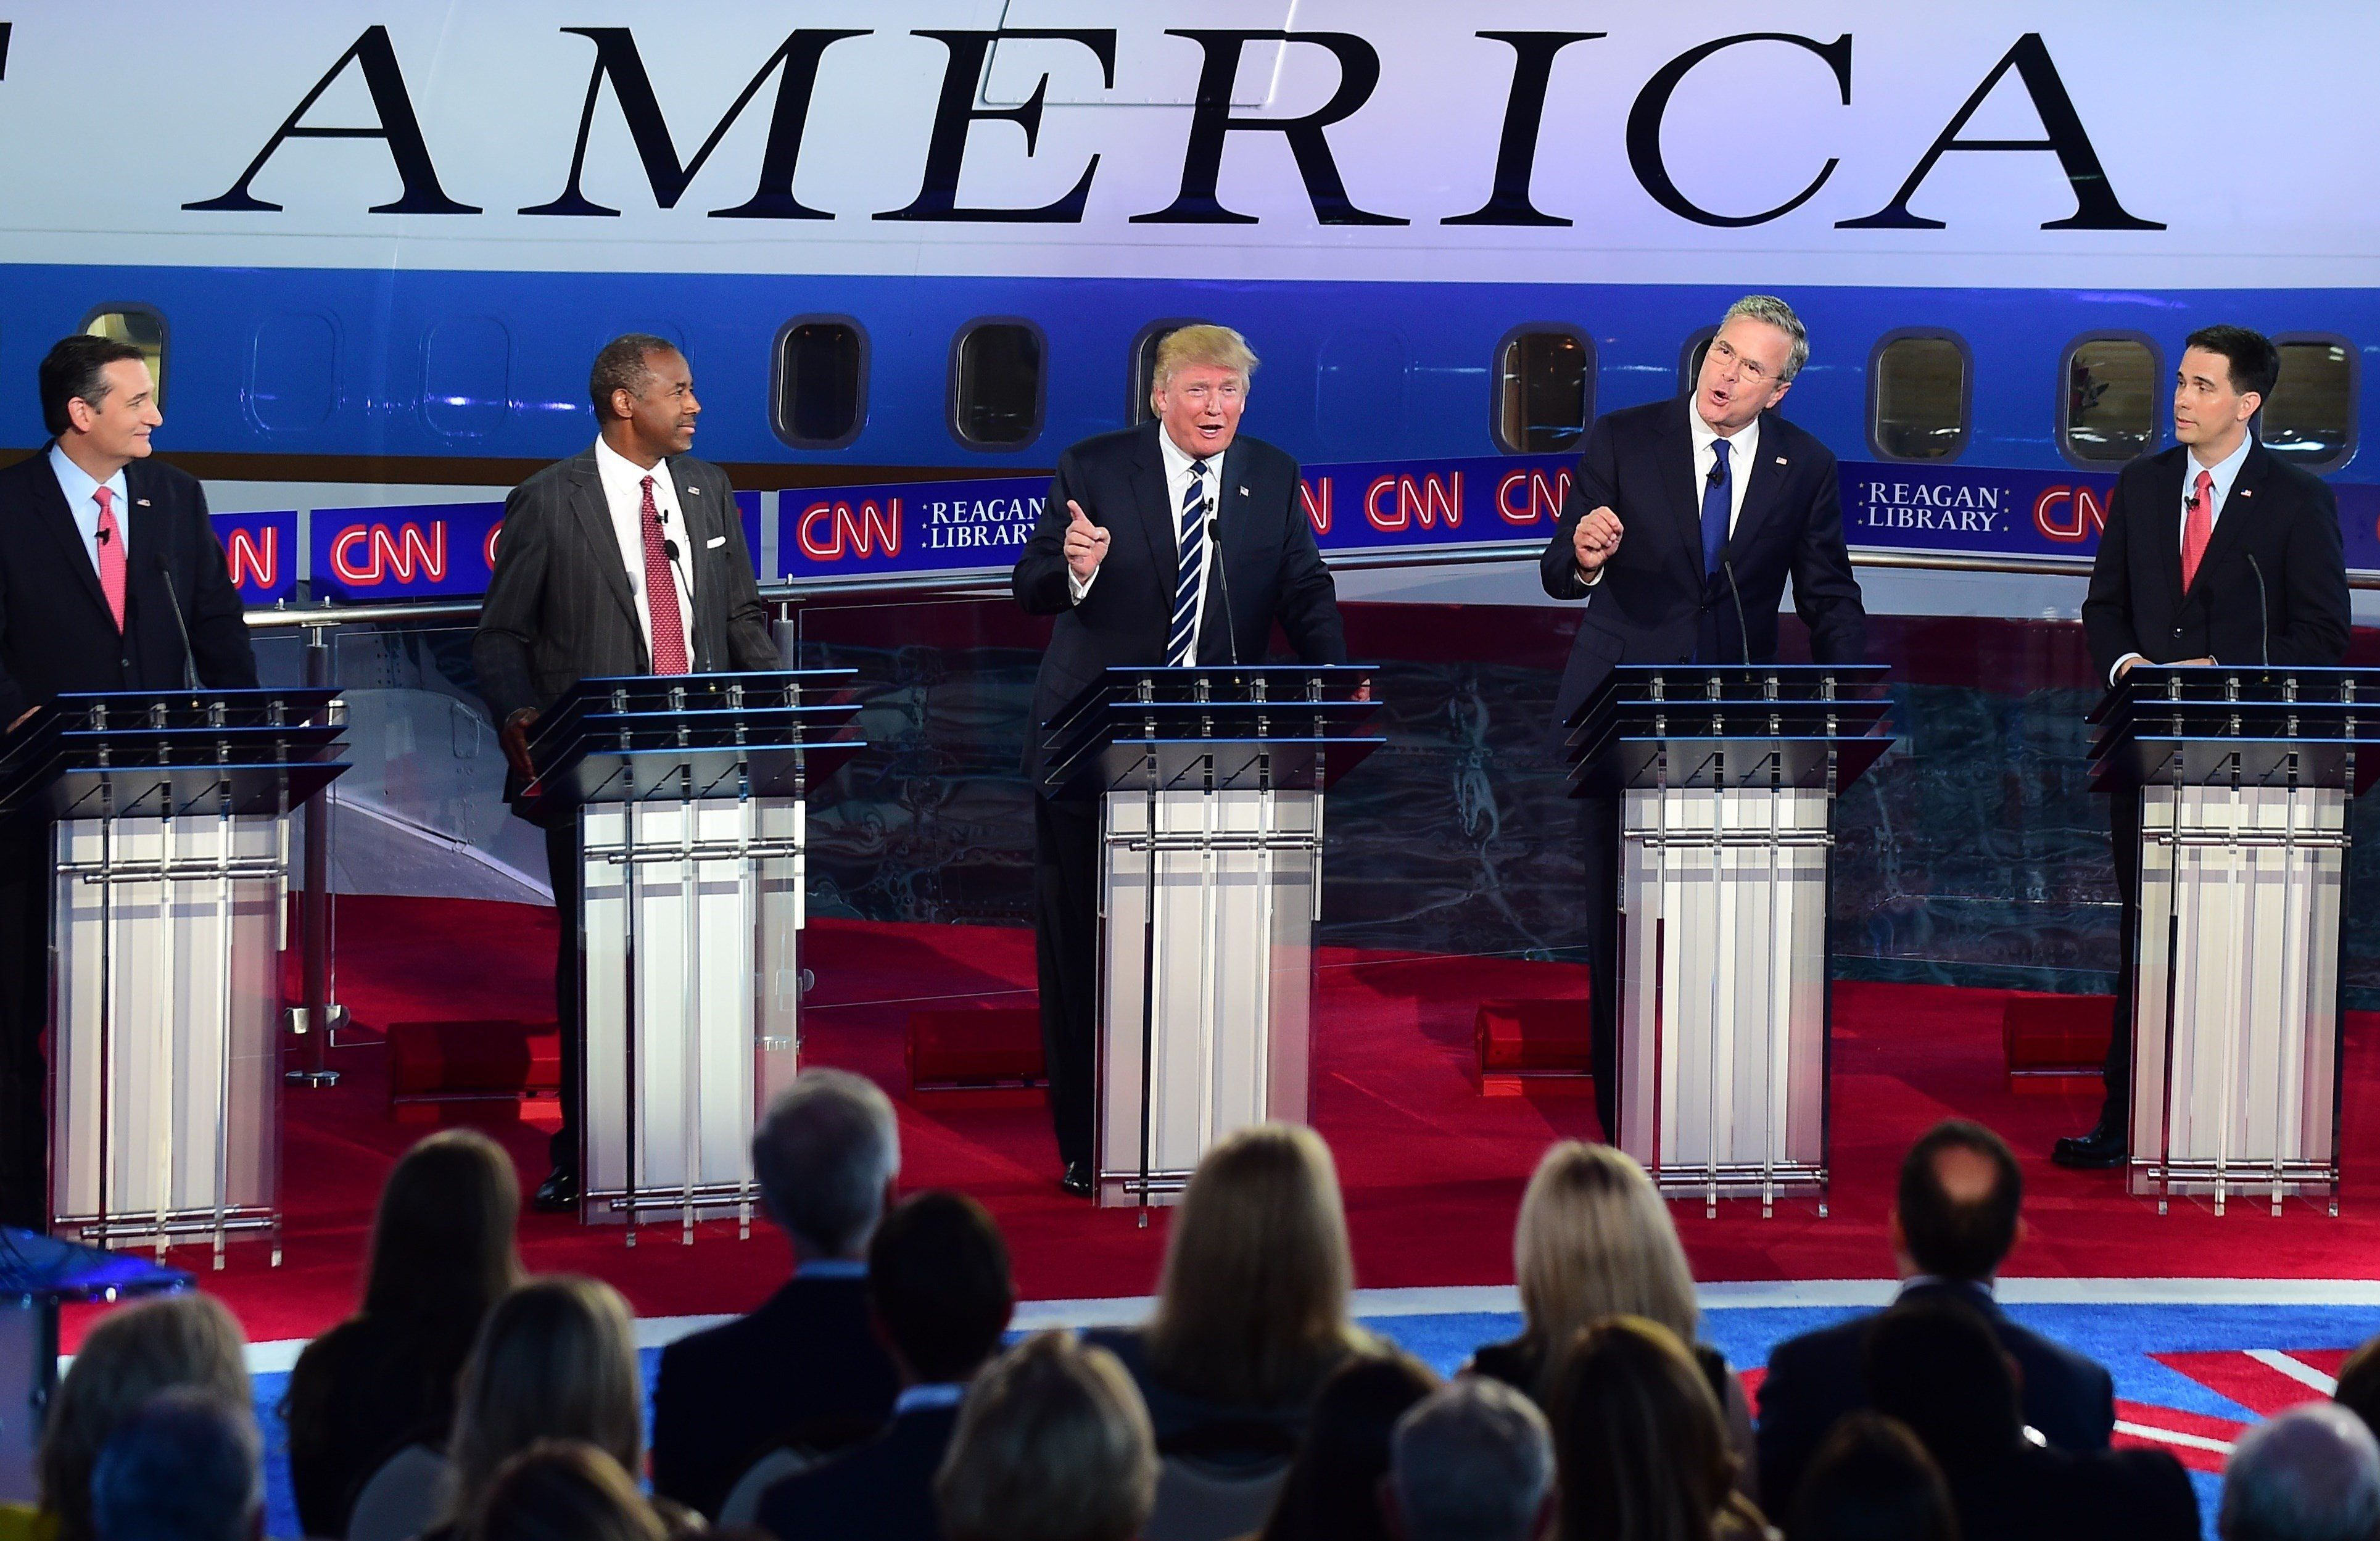 Republican presidential hopefuls, (L-R) Texas Sen. Ted Cruz, retired neurosurgeon Ben Carson, real estate magnate Donald Trump, former Florida Gov. Jeb Bush and Wisconsin Gov. Scott Walker participate in the Republican presidential debate at the Ronald Reagan Presidential Library in Simi Valley, California on September 16, 2015.  Republican presidential frontrunner Donald Trump stepped into a campaign hornet's nest as his rivals collectively turned their sights on the billionaire in the party's second debate of the 2016 presidential race.  AFP PHOTO / FREDERIC J. BROWN        (Photo credit should read FREDERIC J BROWN/AFP/Getty Images)